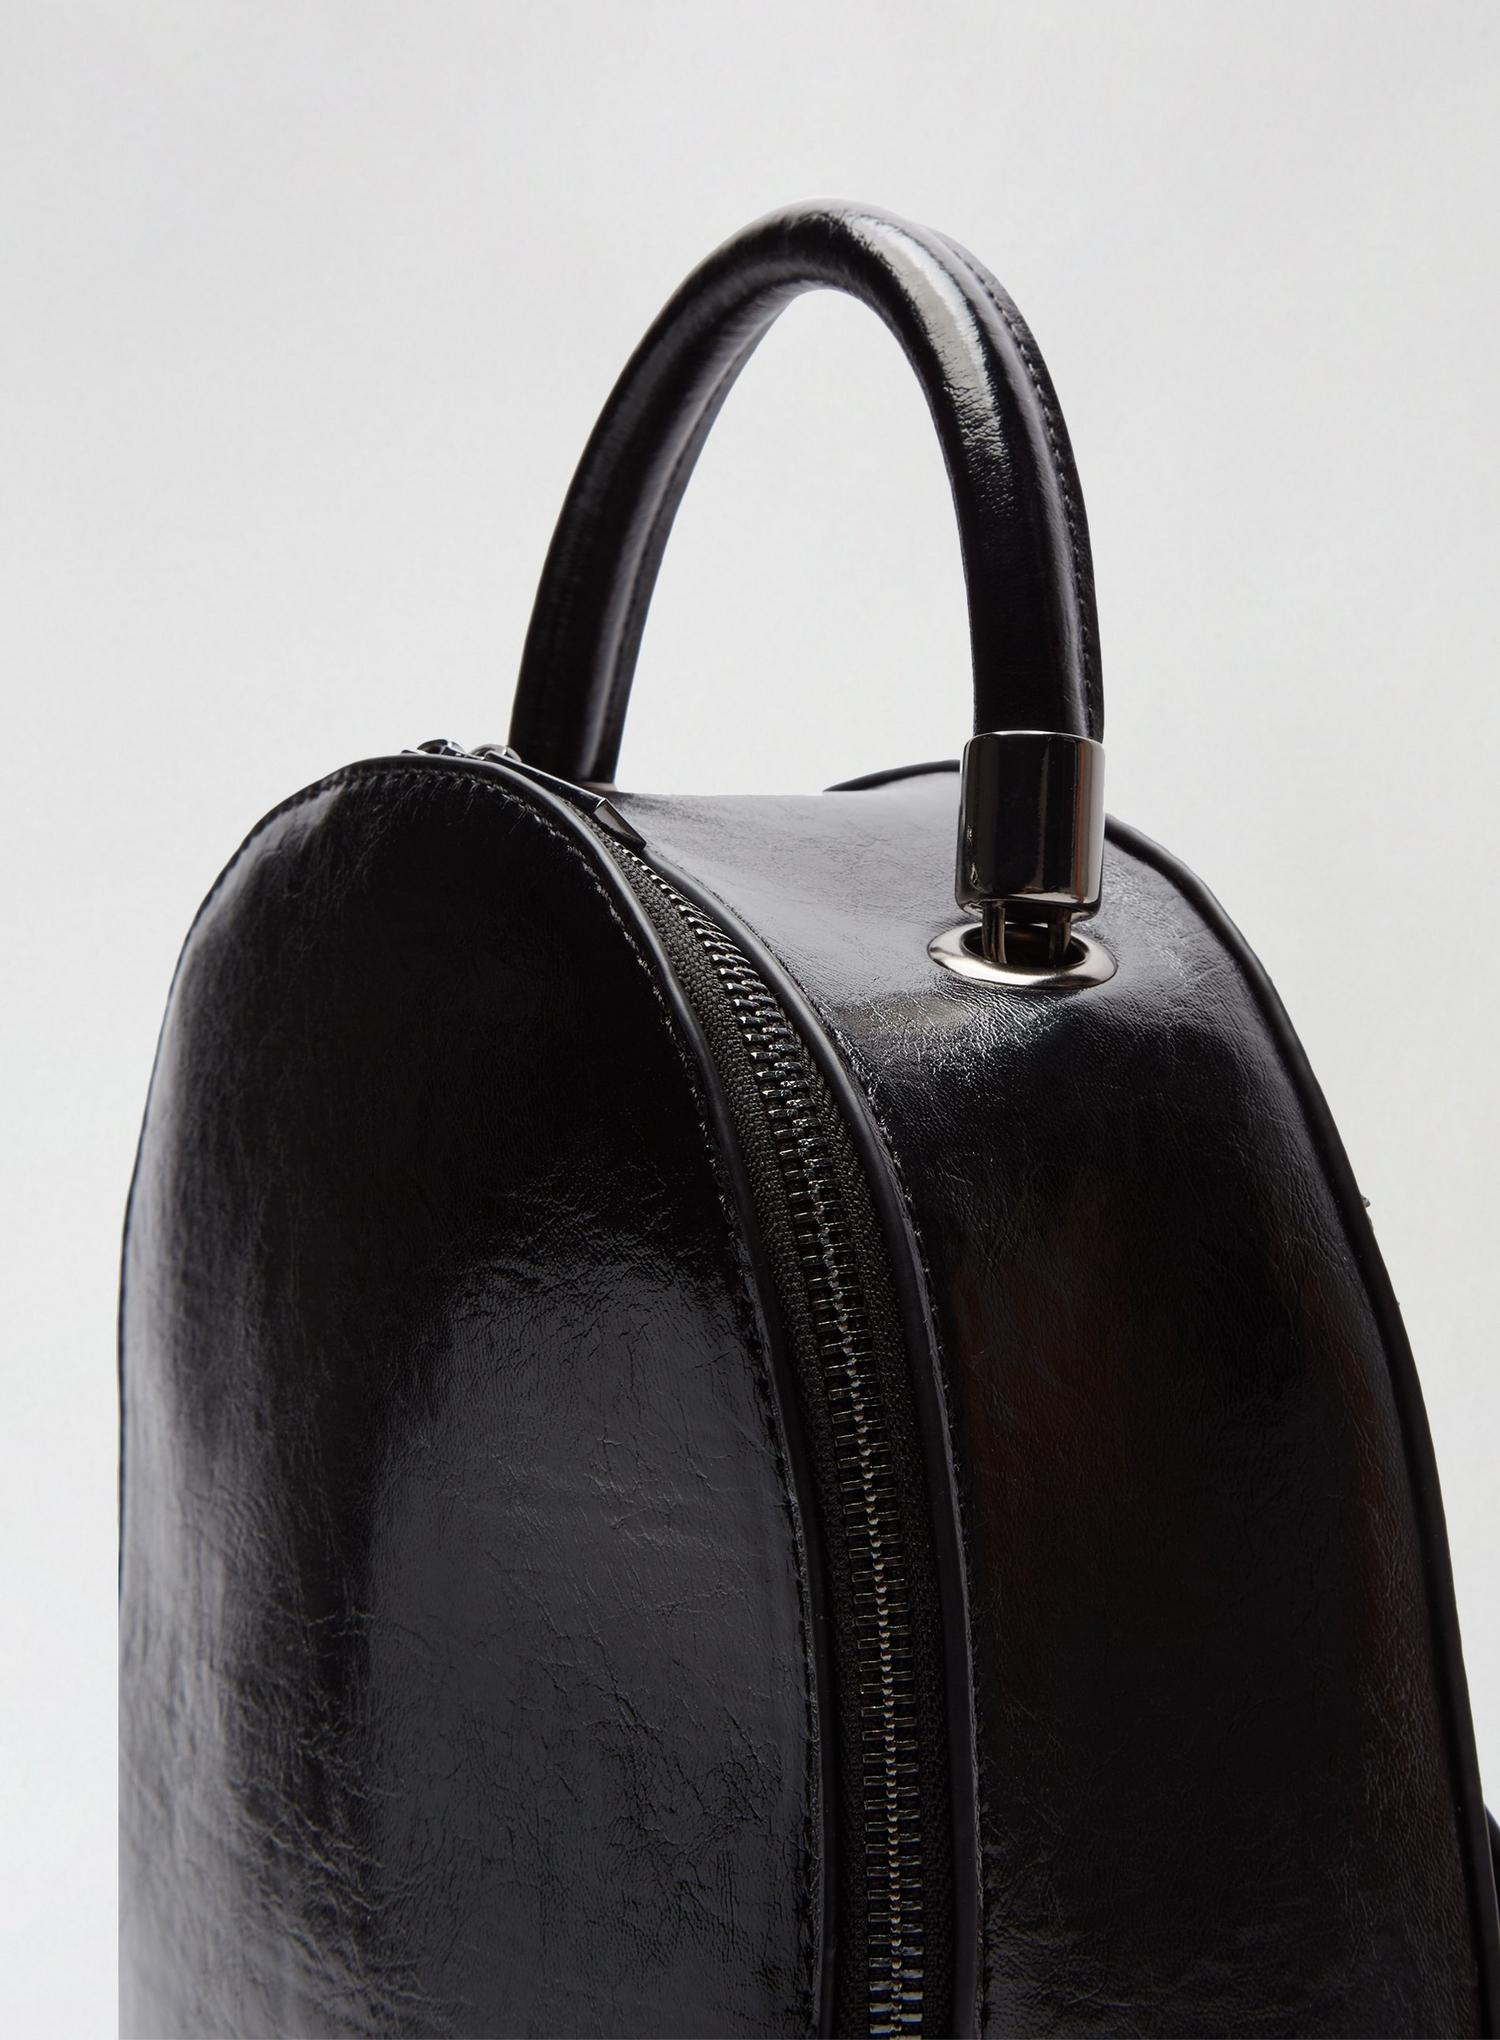 105 BlackBackpack image number 3